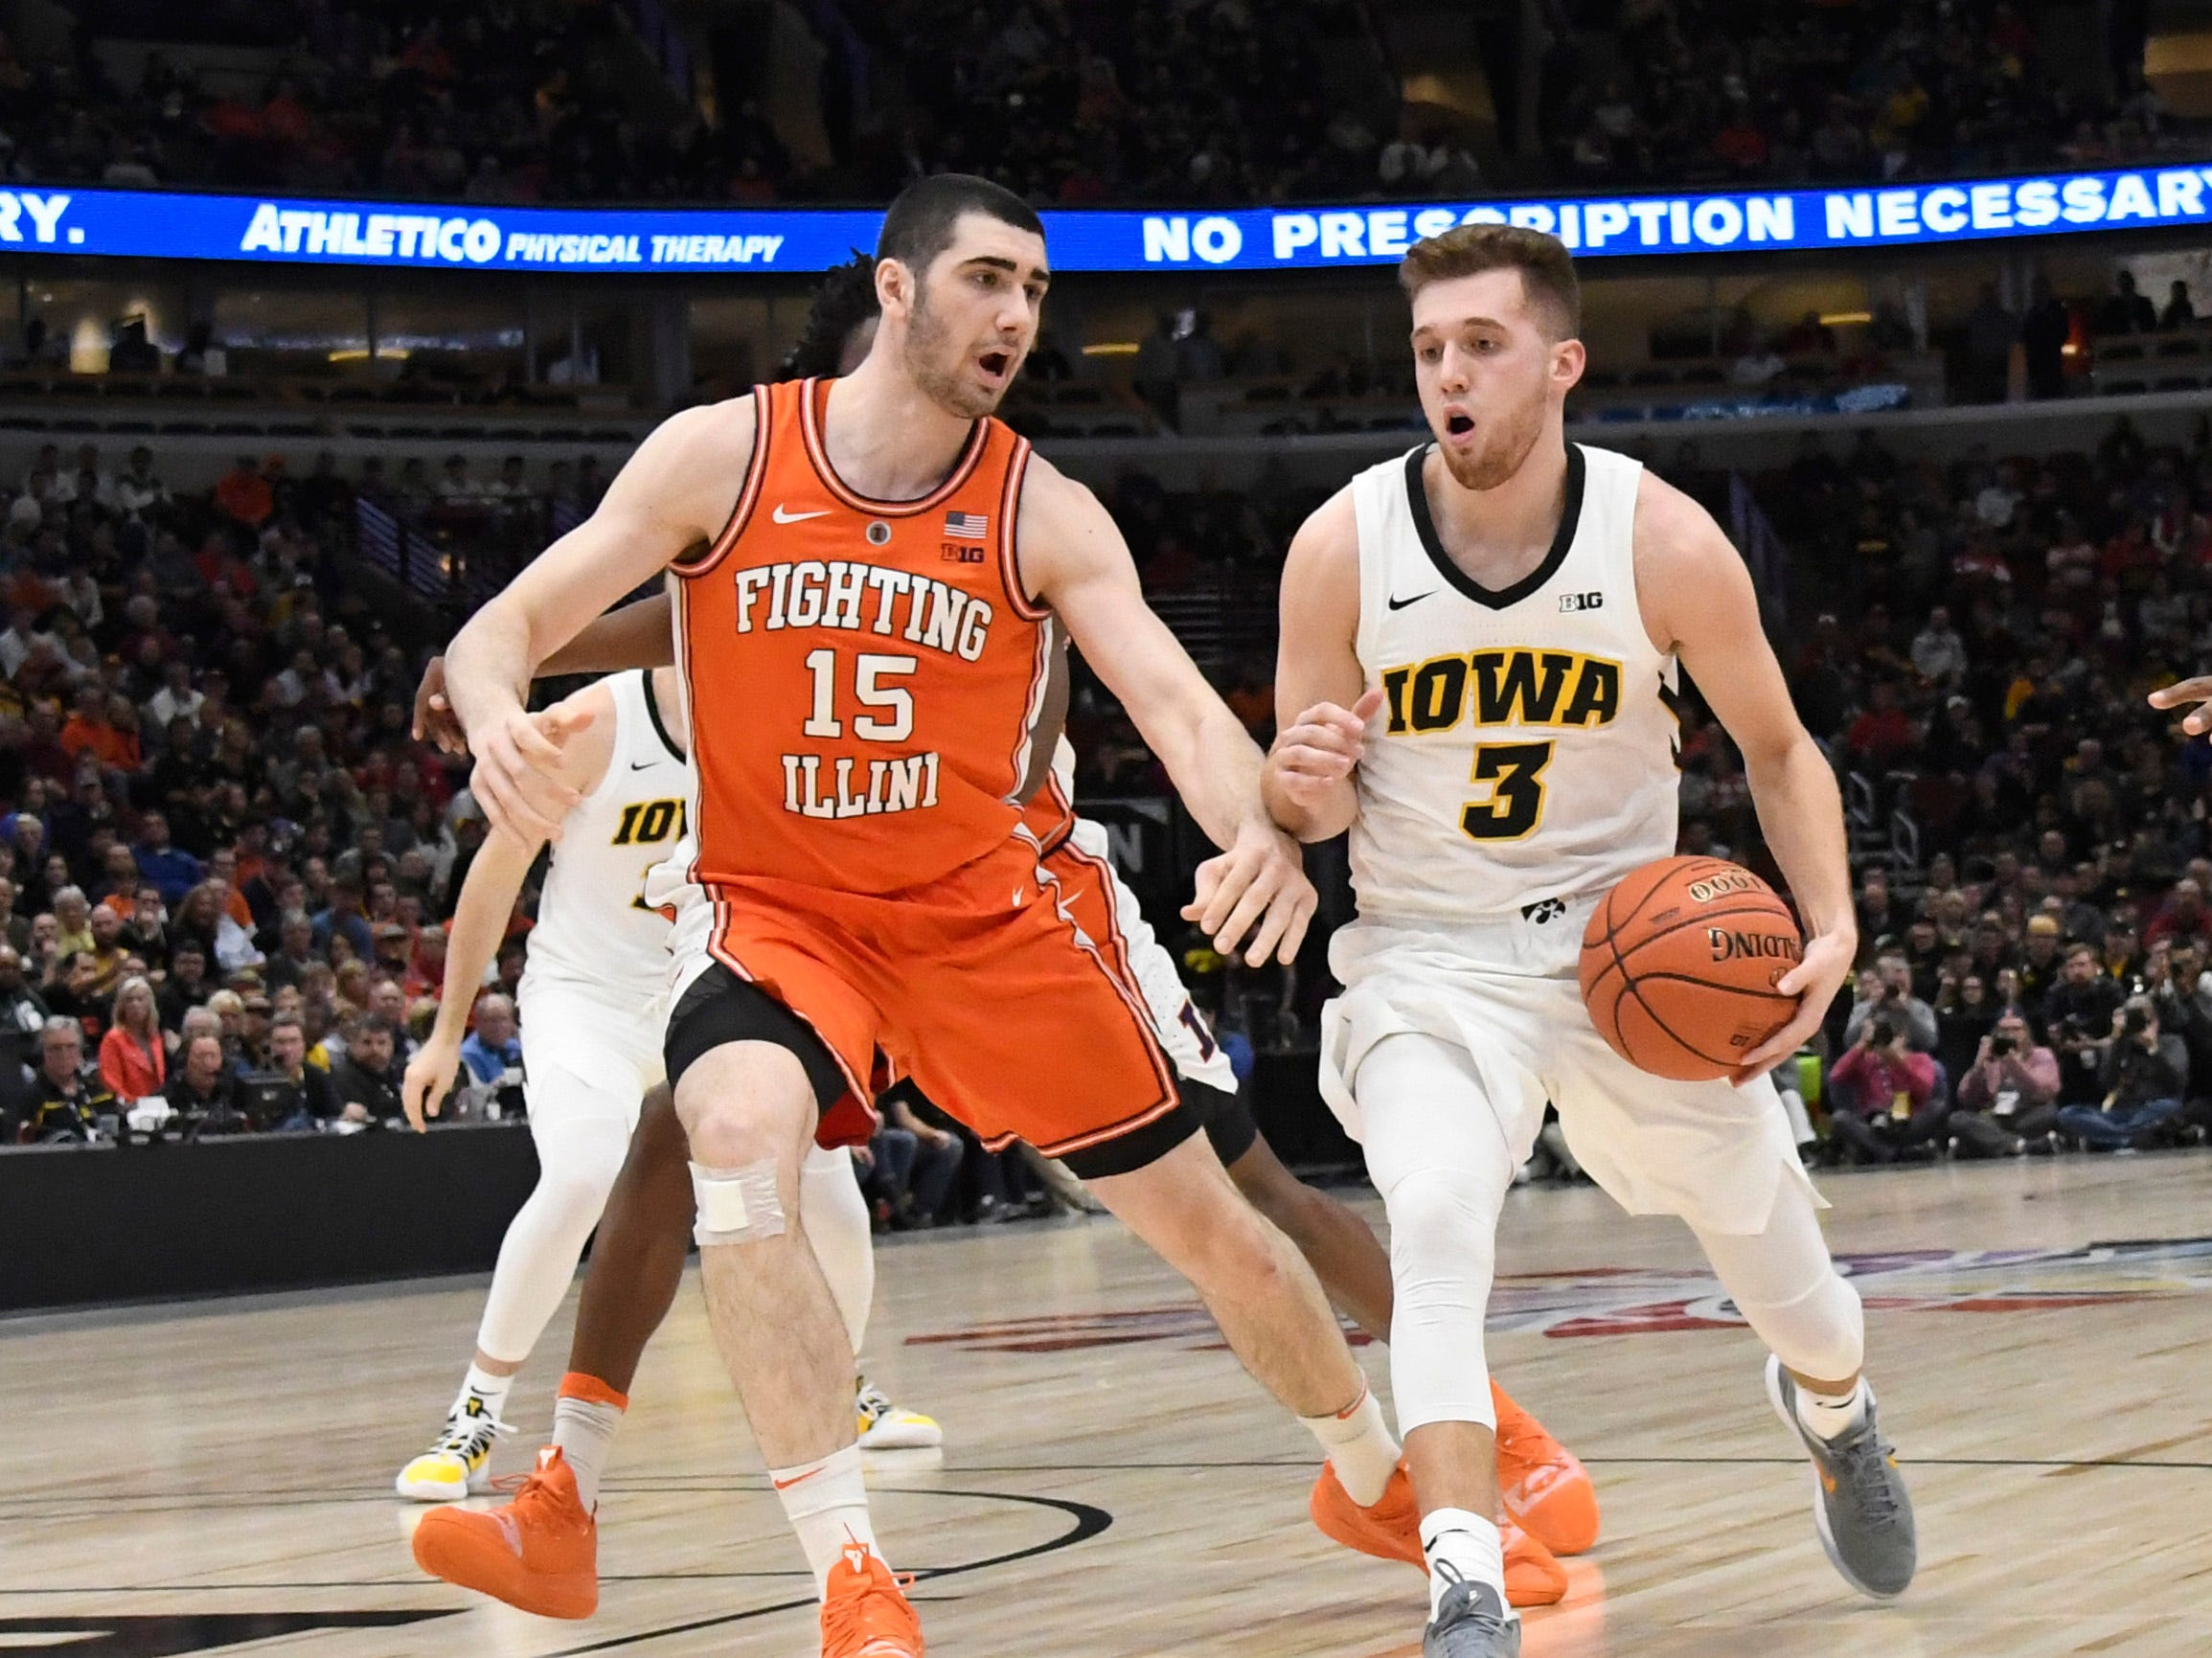 Mar 14, 2019; Chicago, IL, USA; Illinois Fighting Illini forward Giorgi Bezhanishvili (15) defends Iowa Hawkeyes guard Jordan Bohannon (3) during the first half in the Big Ten conference tournament at United Center. Mandatory Credit: David Banks-USA TODAY Sports